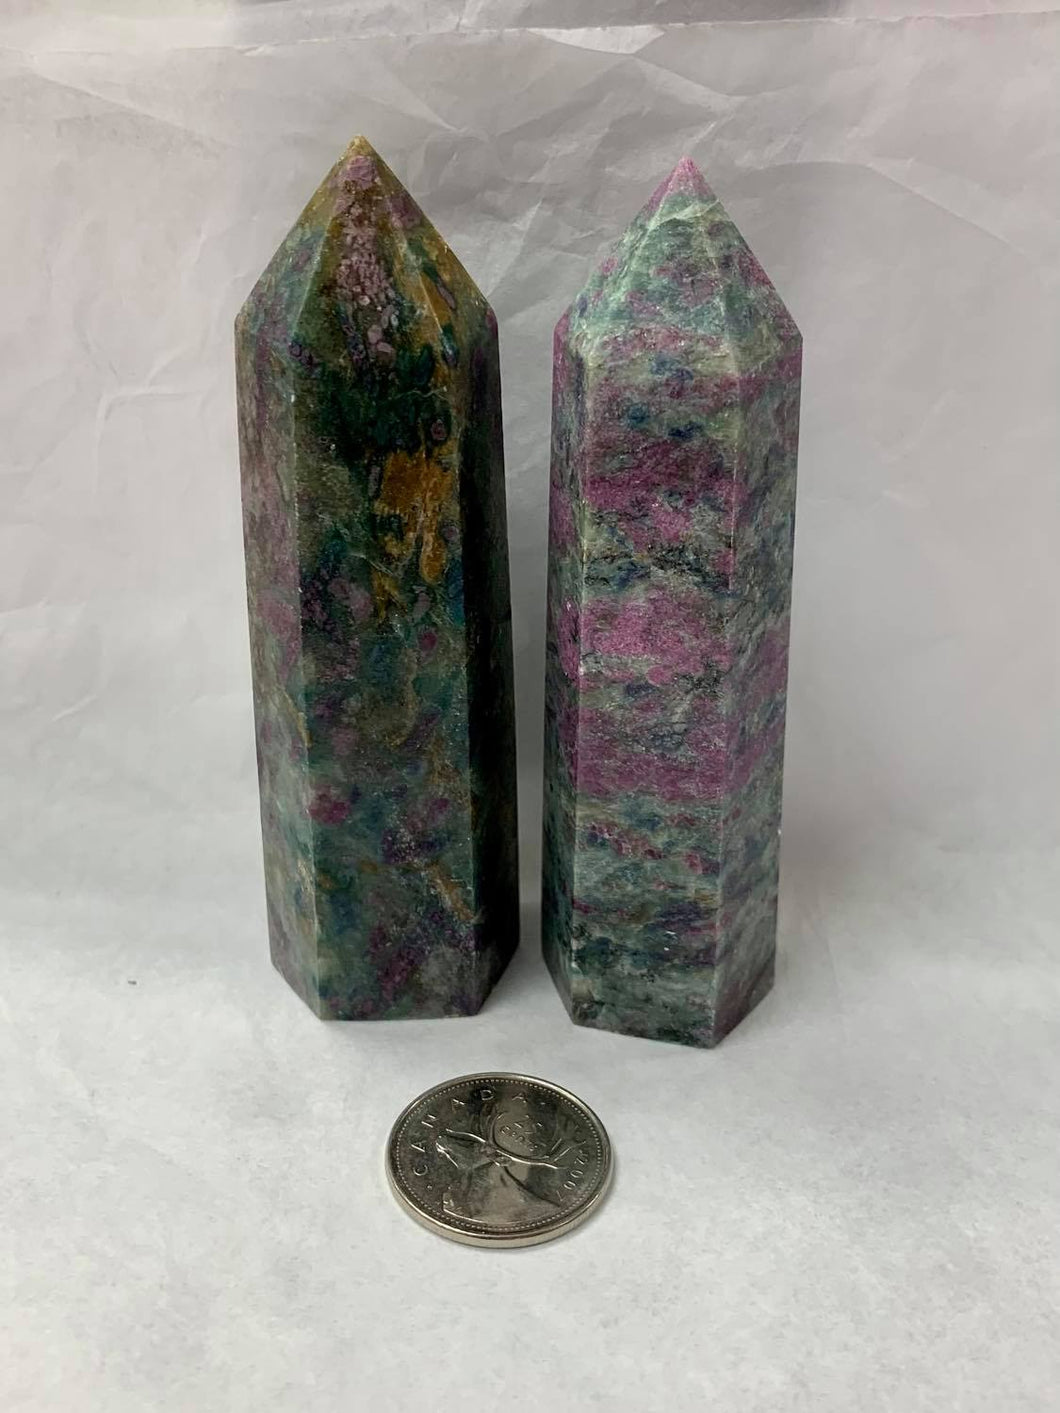 Ruby and Kyanite Tower